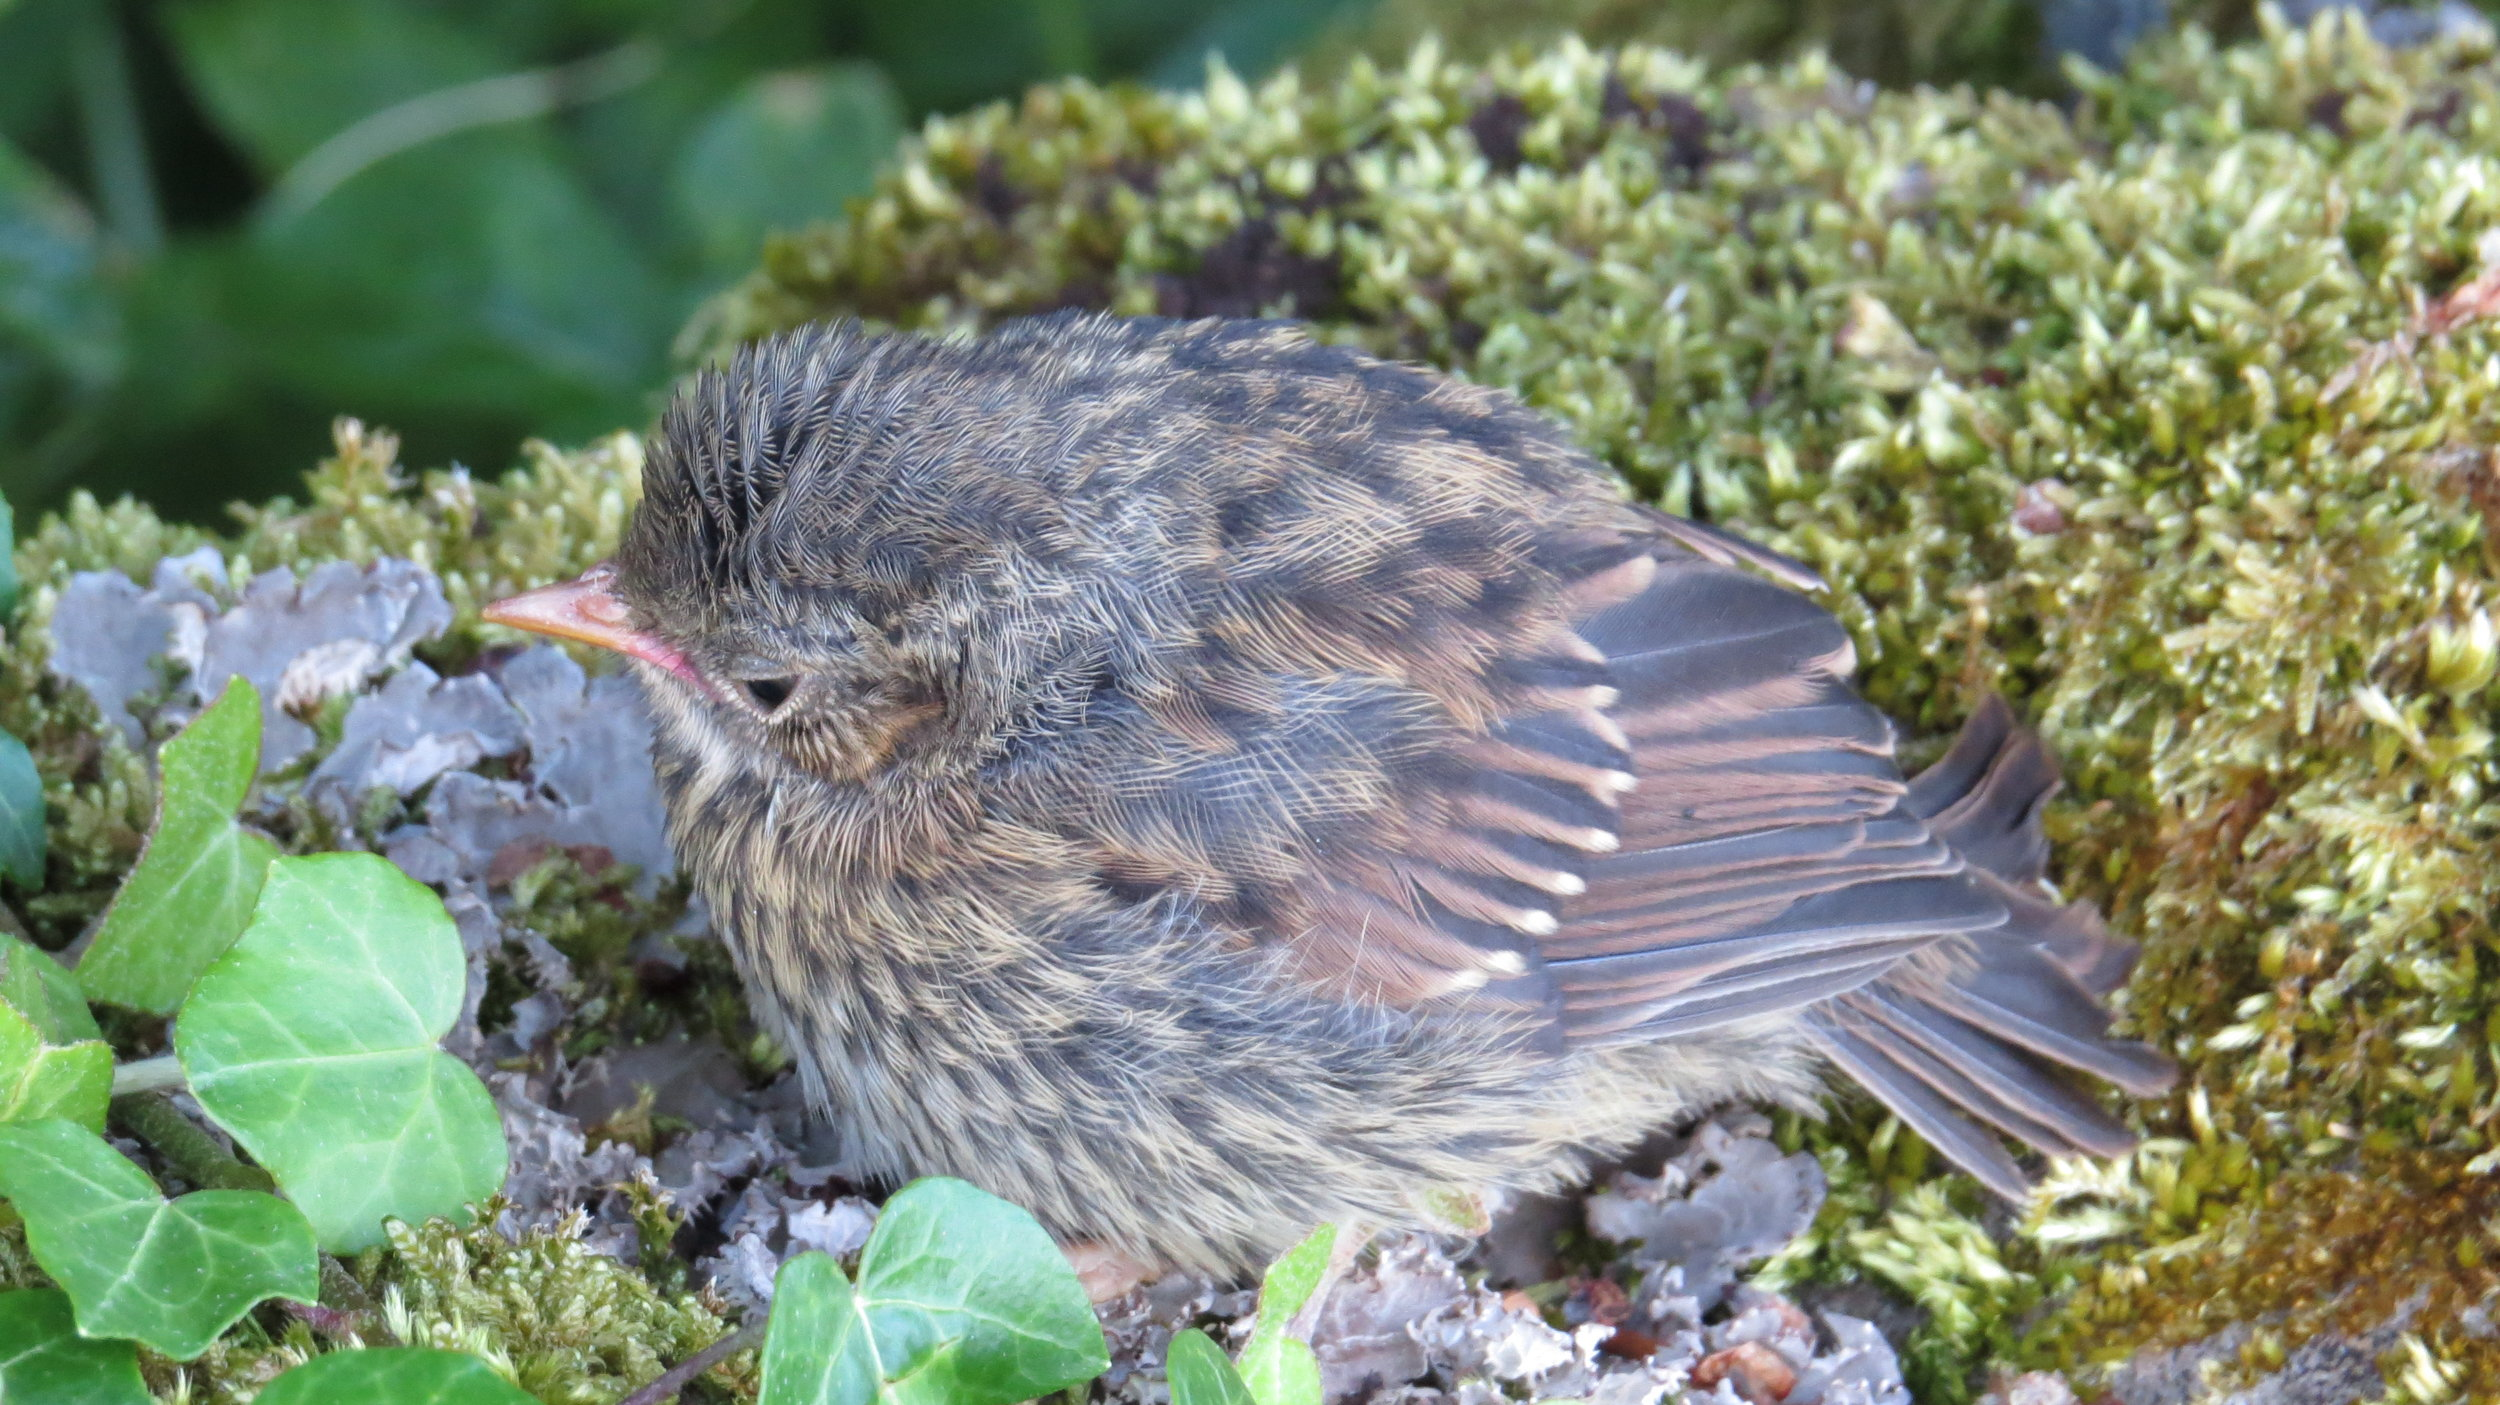 Saved a Fledged Bird